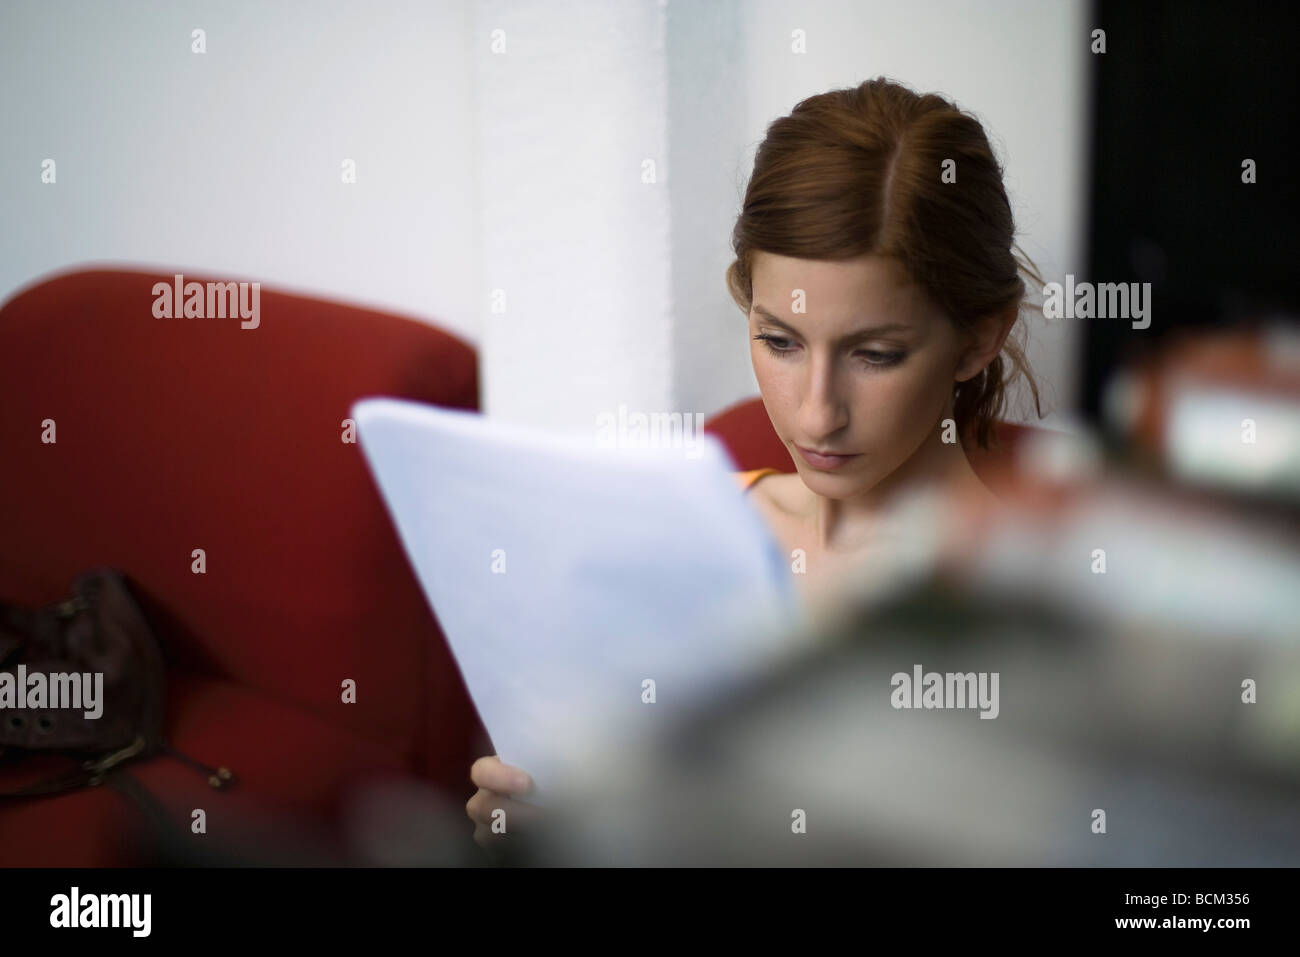 Young woman reading document - Stock Image